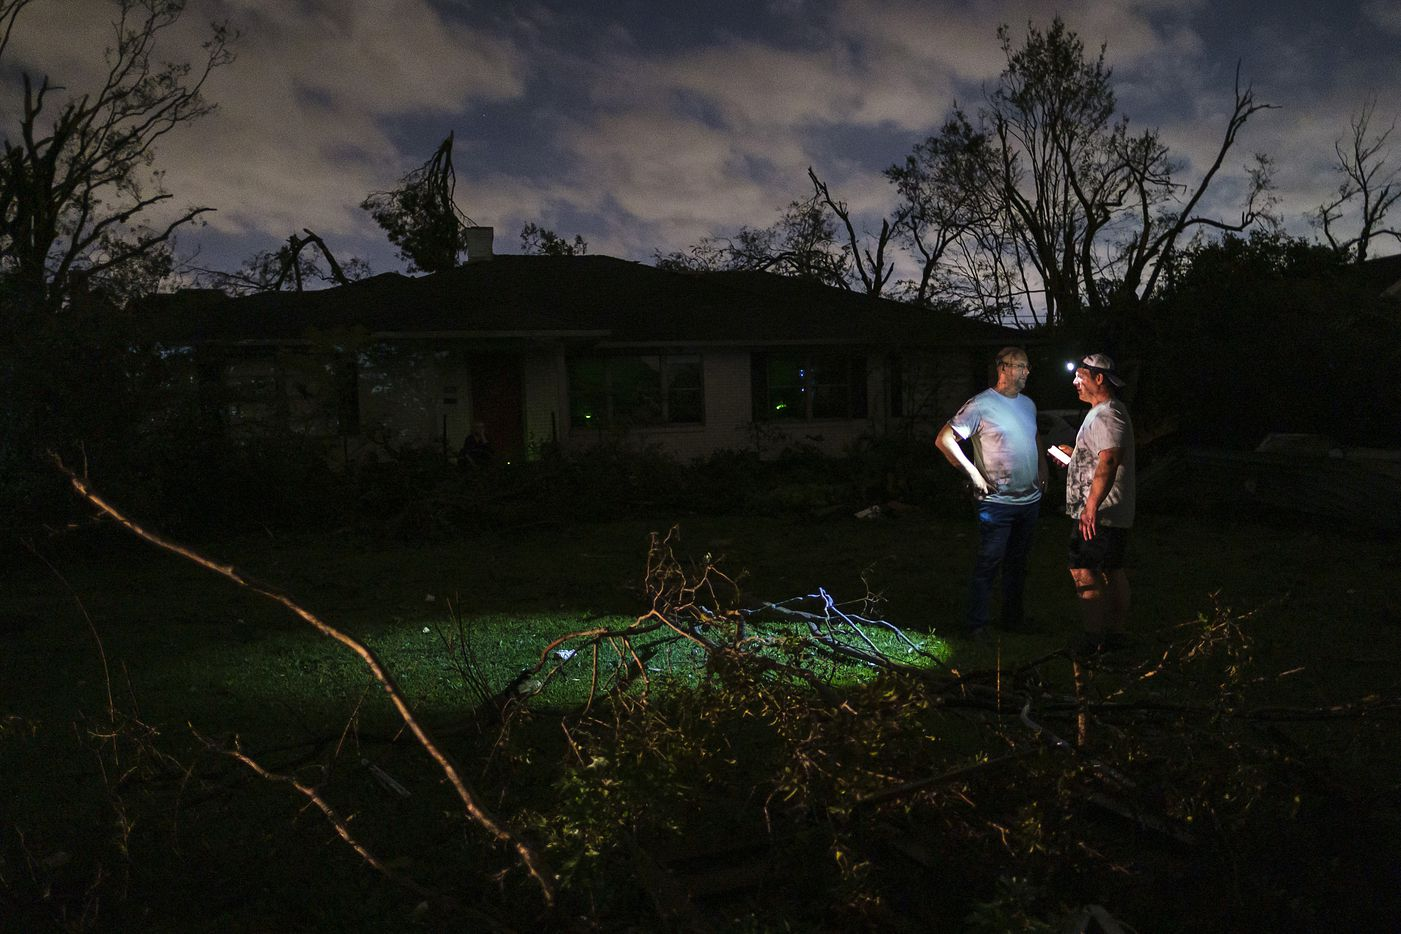 Residents survey tornado damage to their darkened neighborhood near the intersection of Royal and Hillcrest on Sunday, Oct. 20, 2019, in Dallas.